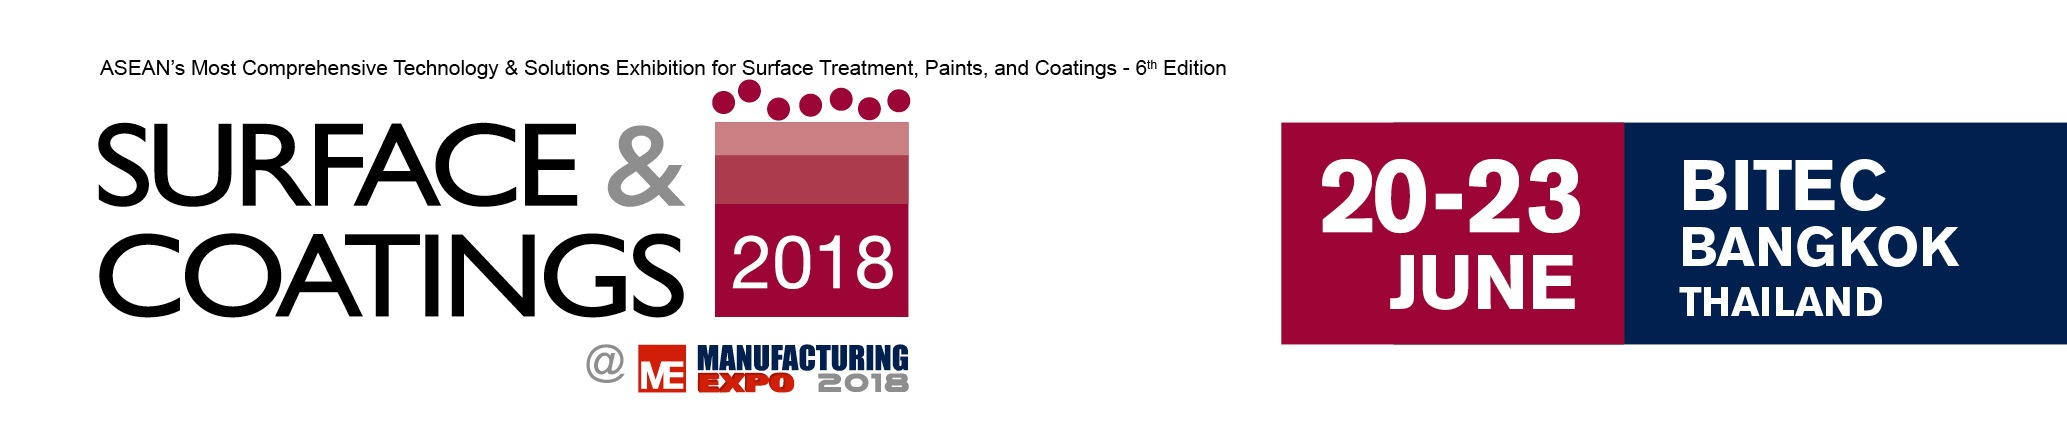 Surfacce & Coatings 2018